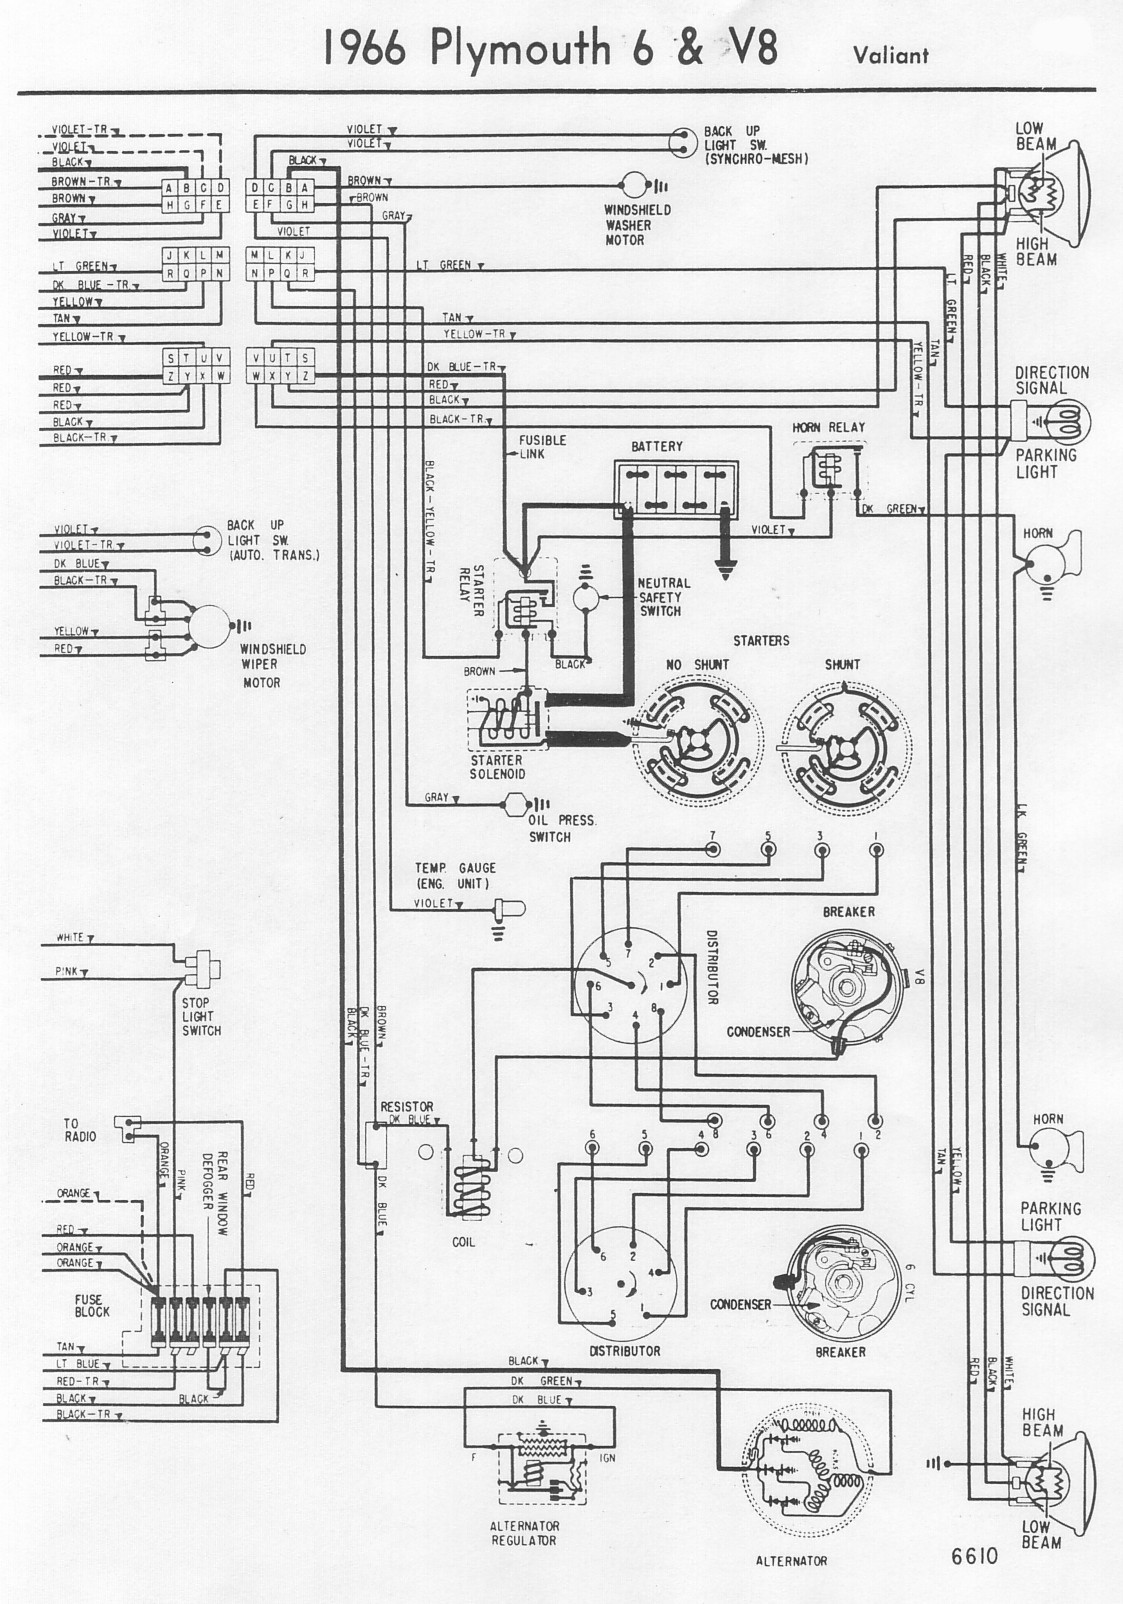 66ValiantB?quality\\=80\\&strip\\=all 1976 suzuki dr 250 wiring diagram suzuki gsx 750 wiring diagram gs750 wiring diagram at bayanpartner.co